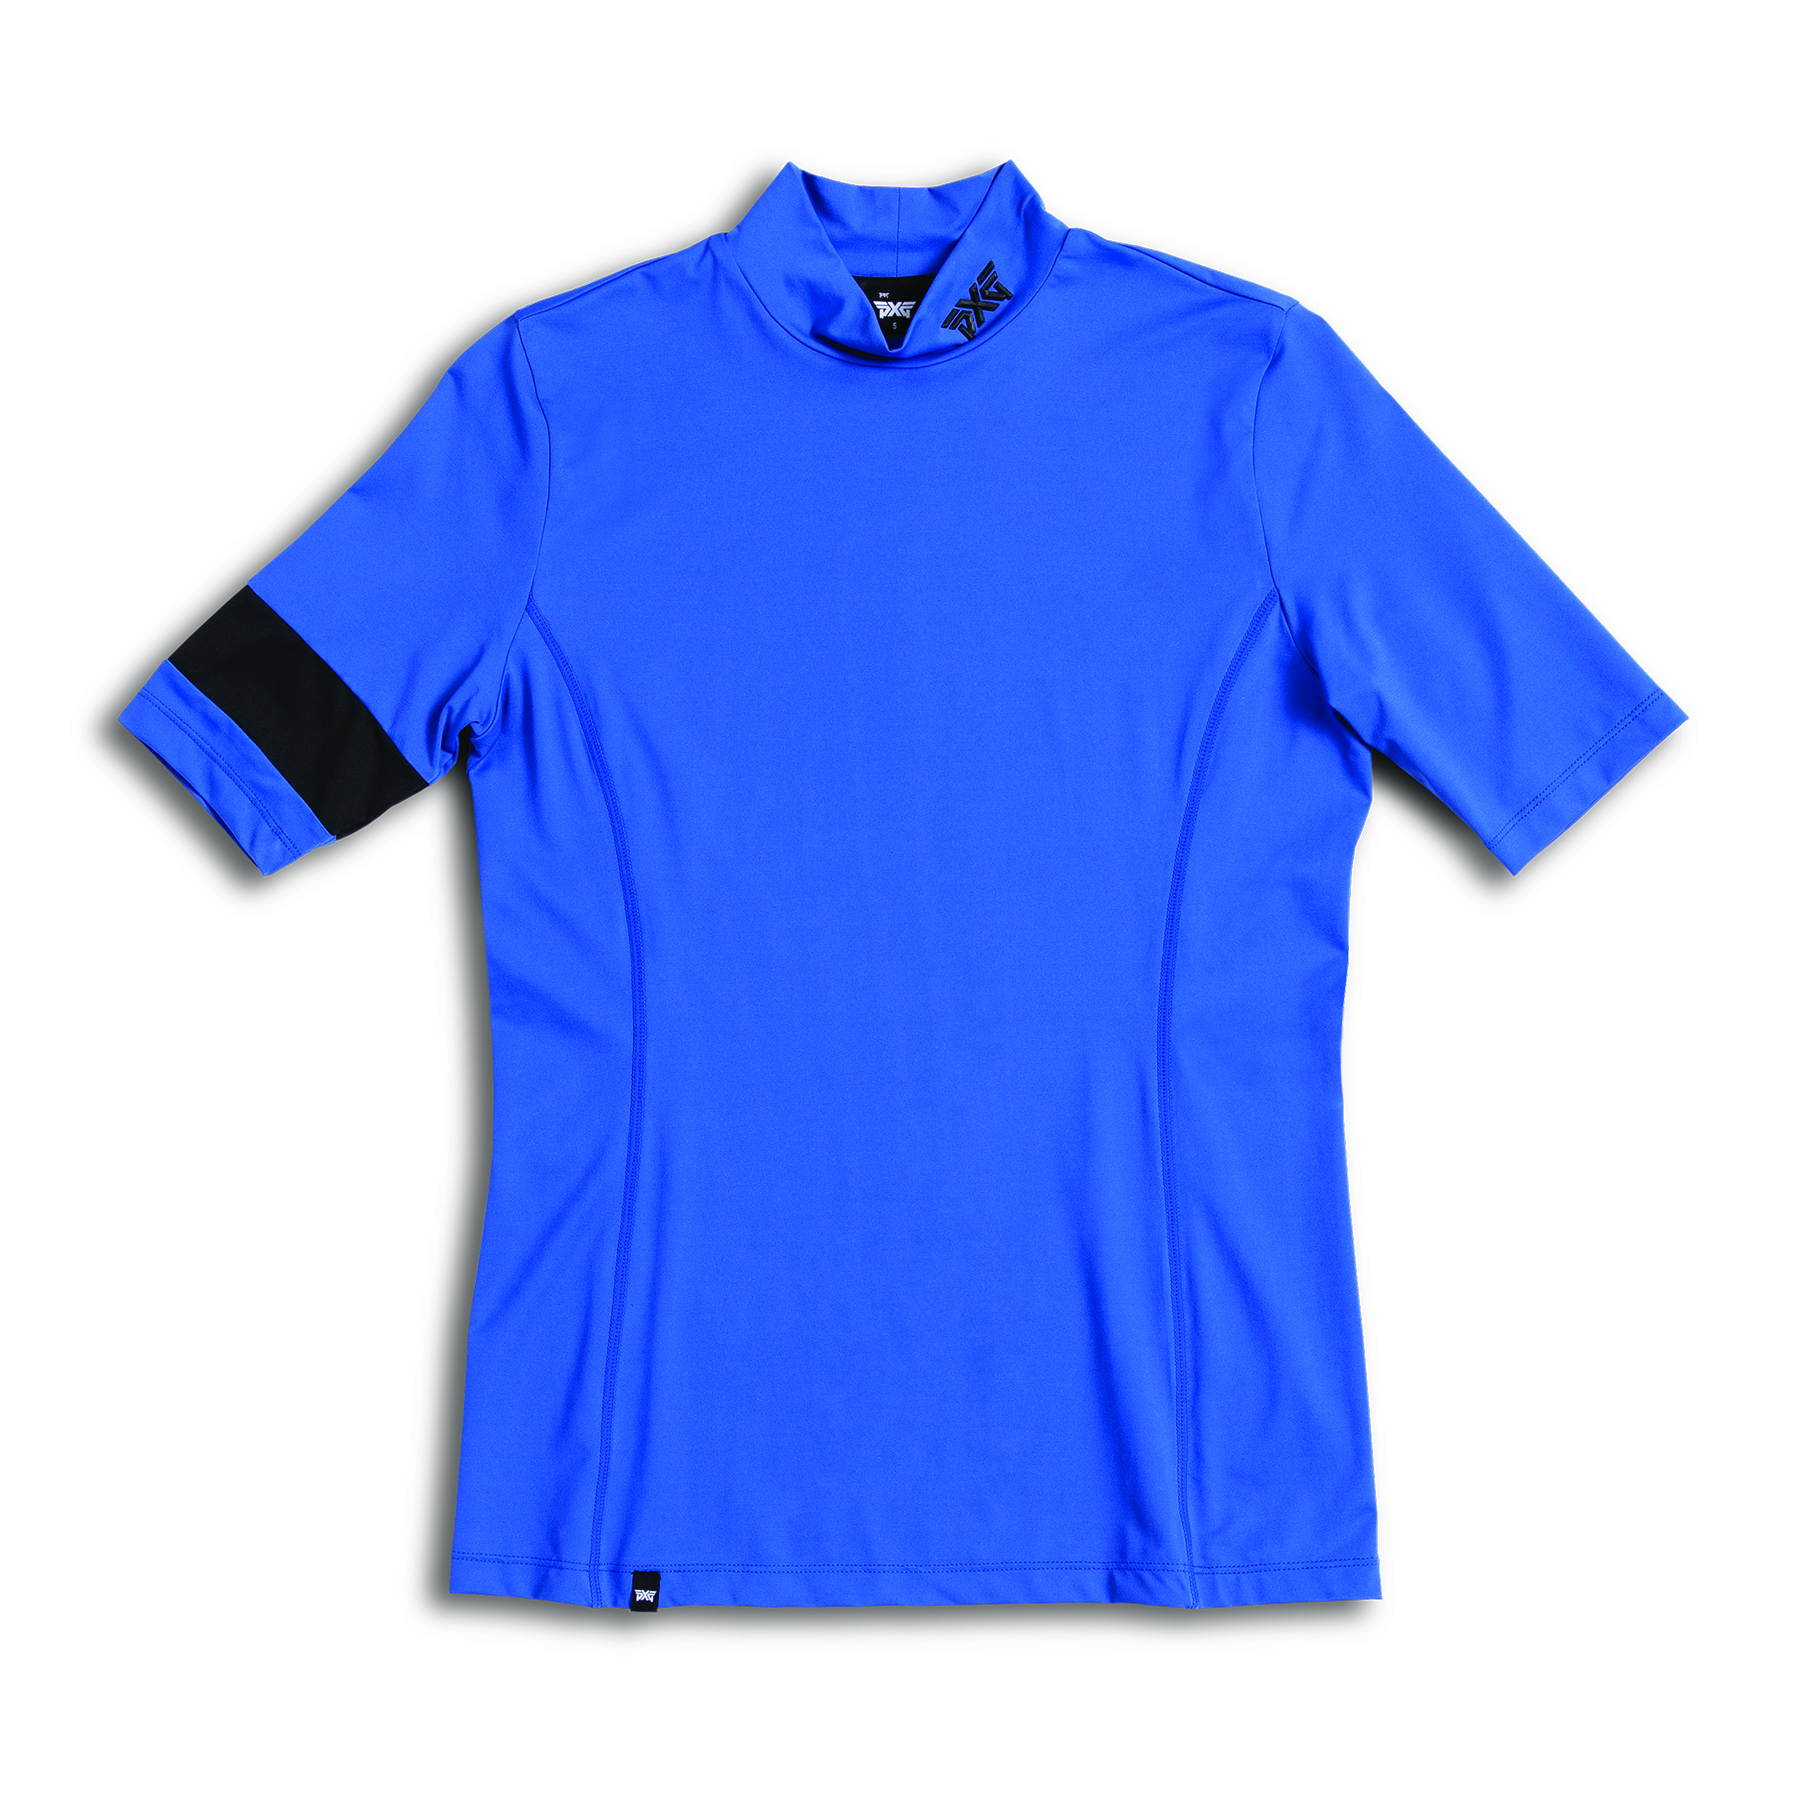 Womens-Banded-Mock-Neck-Shirt-Blue-Lay-Flat-6x6-0001.jpg